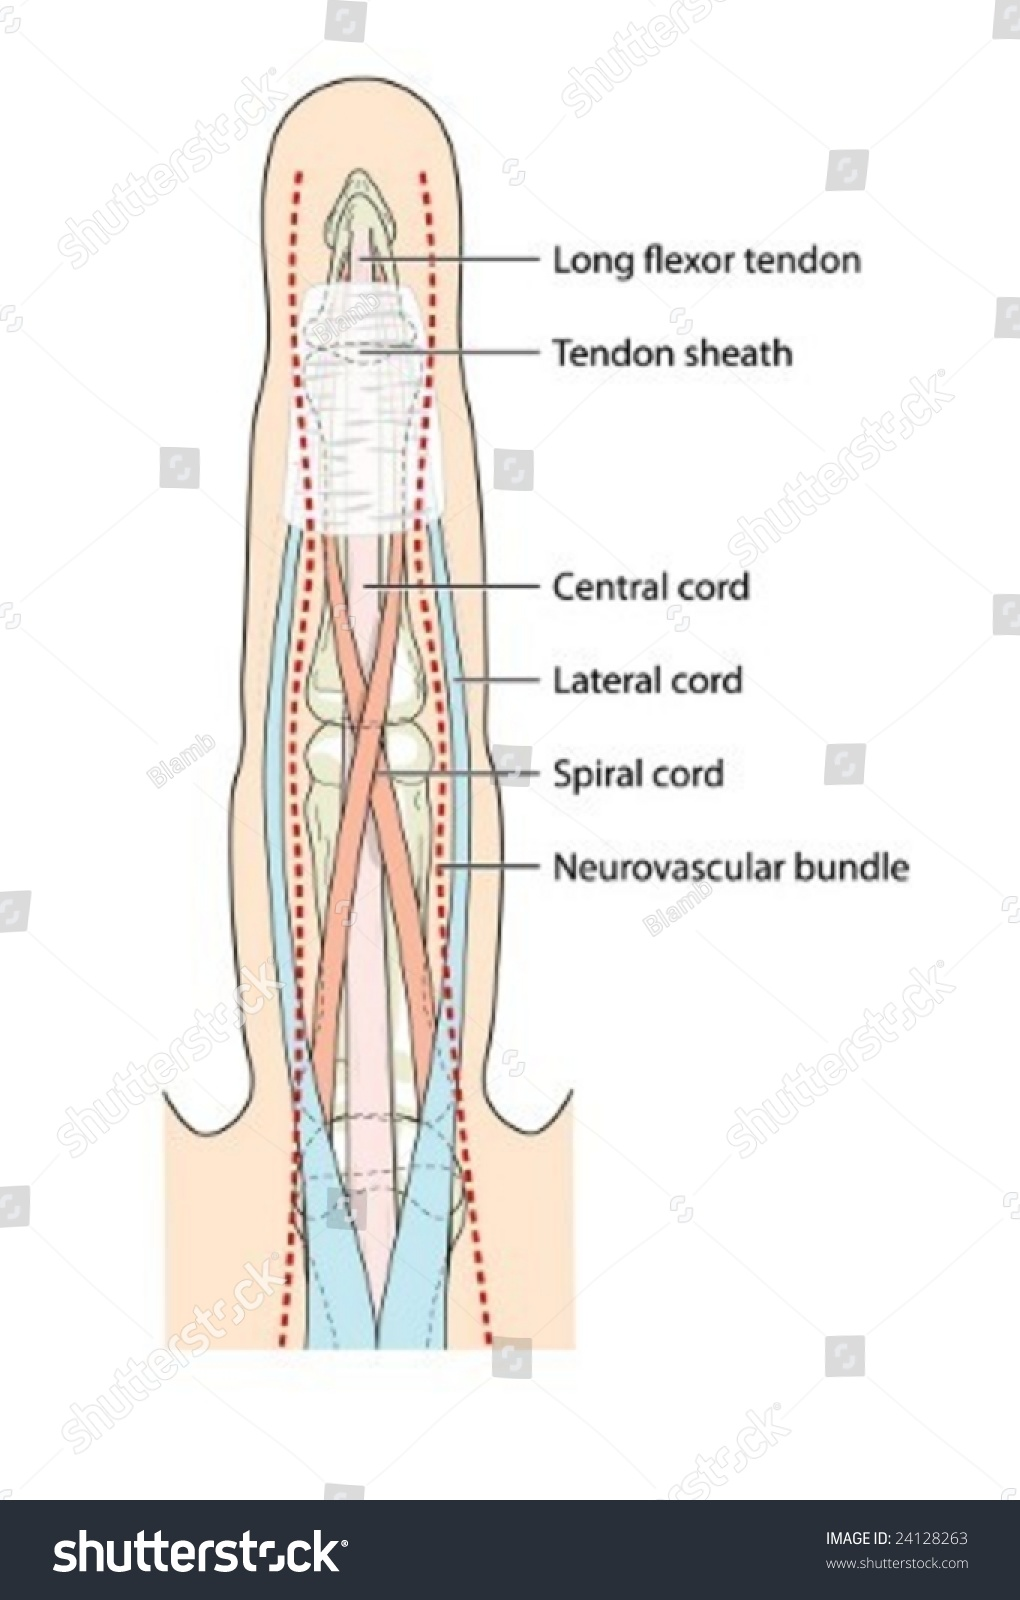 Anatomy Finger Tendons Labeled Stock Vector 24128263 - Shutterstock